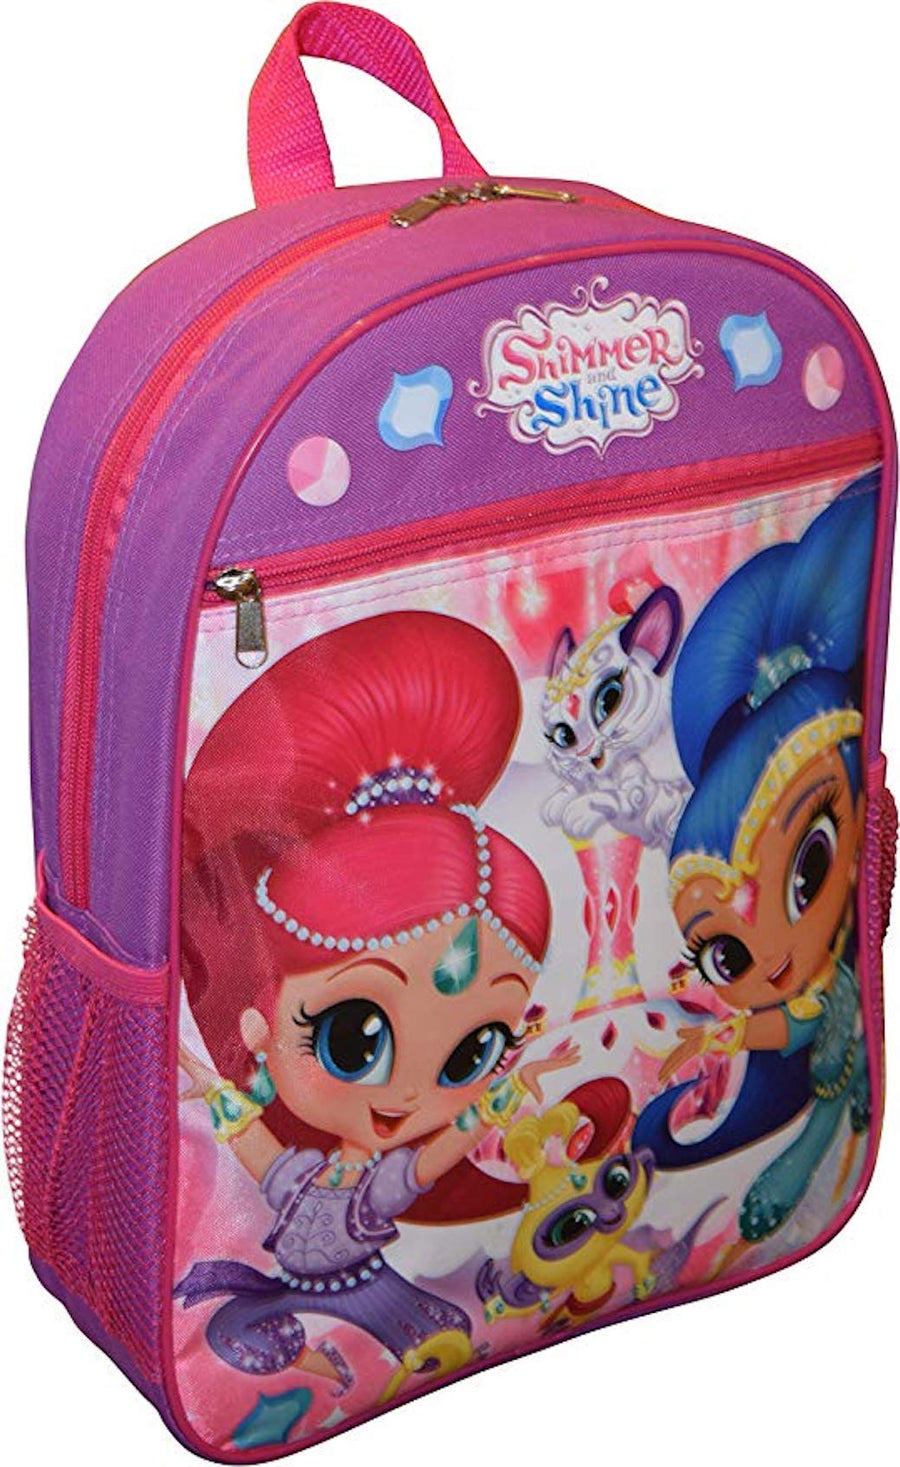 "Nickelodeon Girls' Shimmer and Shine 15"" School Bag Book Bag Backpack - Pink"